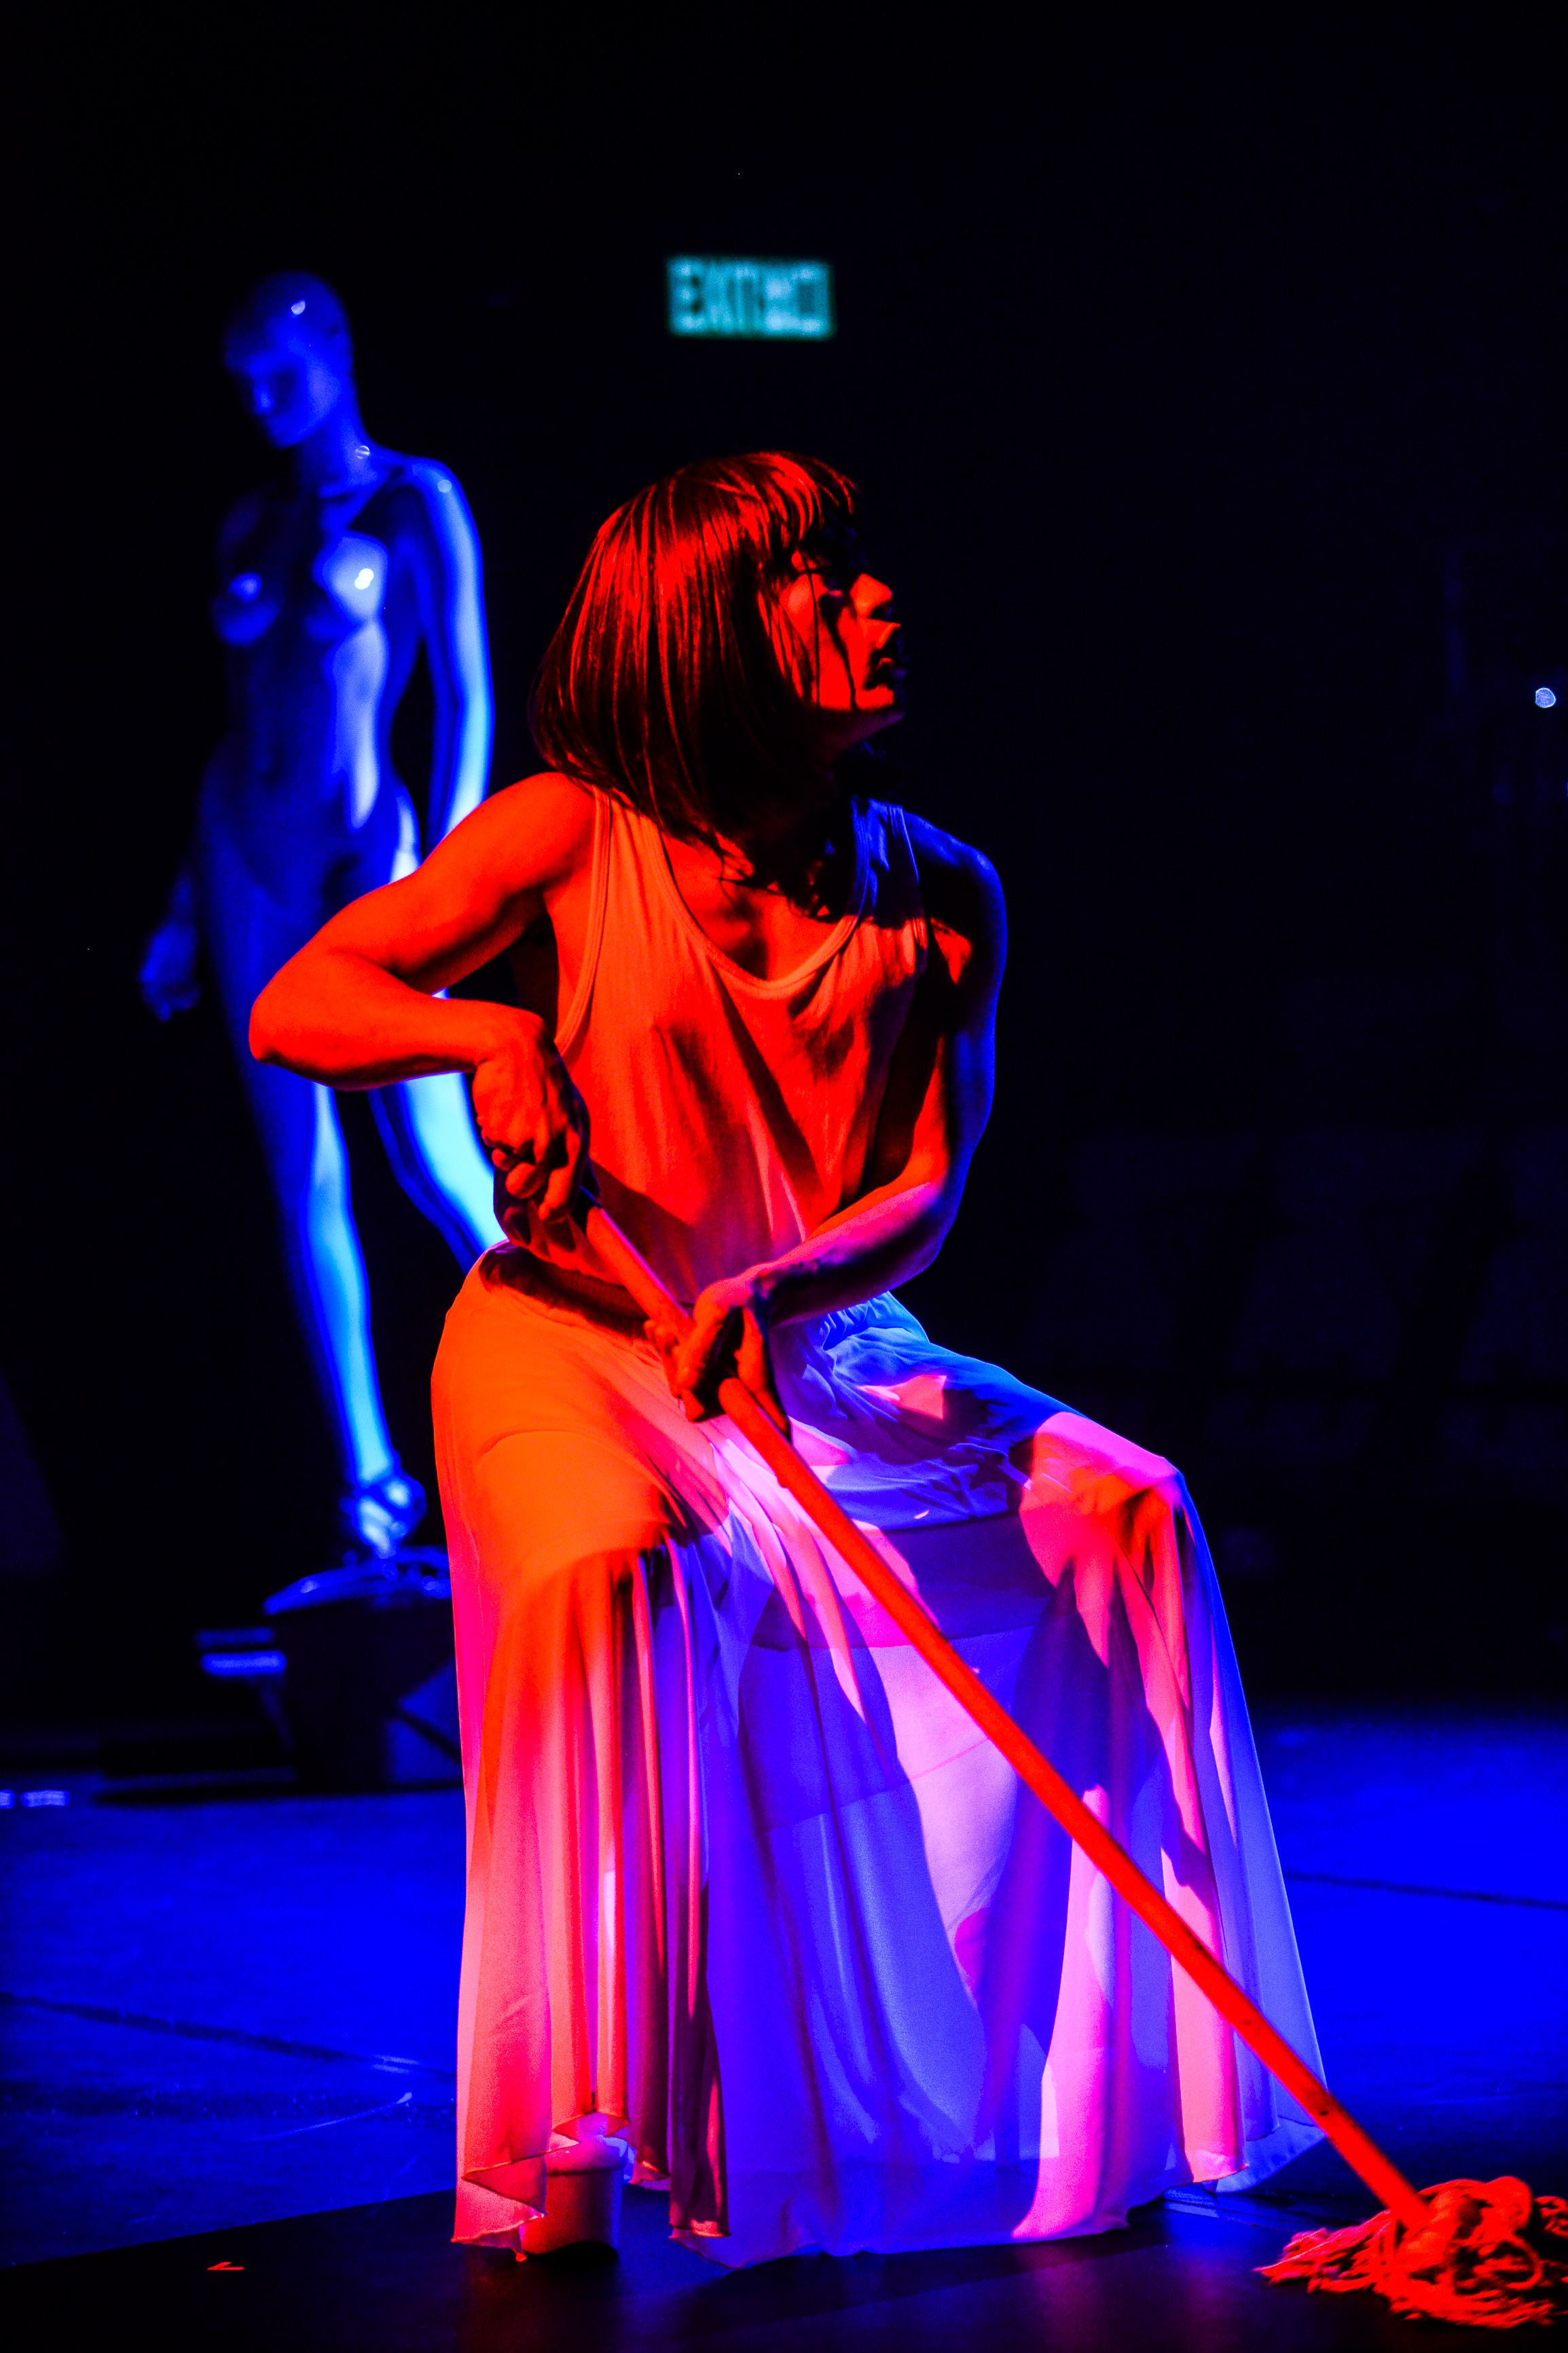 The Furies Variations, Rooftop Productions Theatre Hong Kong 2018 | Featuring: Yau Fuk Wing | Tagged as: Show, The Furies Variations | Photo: Fung Wai Sun |  (Rooftop Productions • Hong Kong Theatre Company)